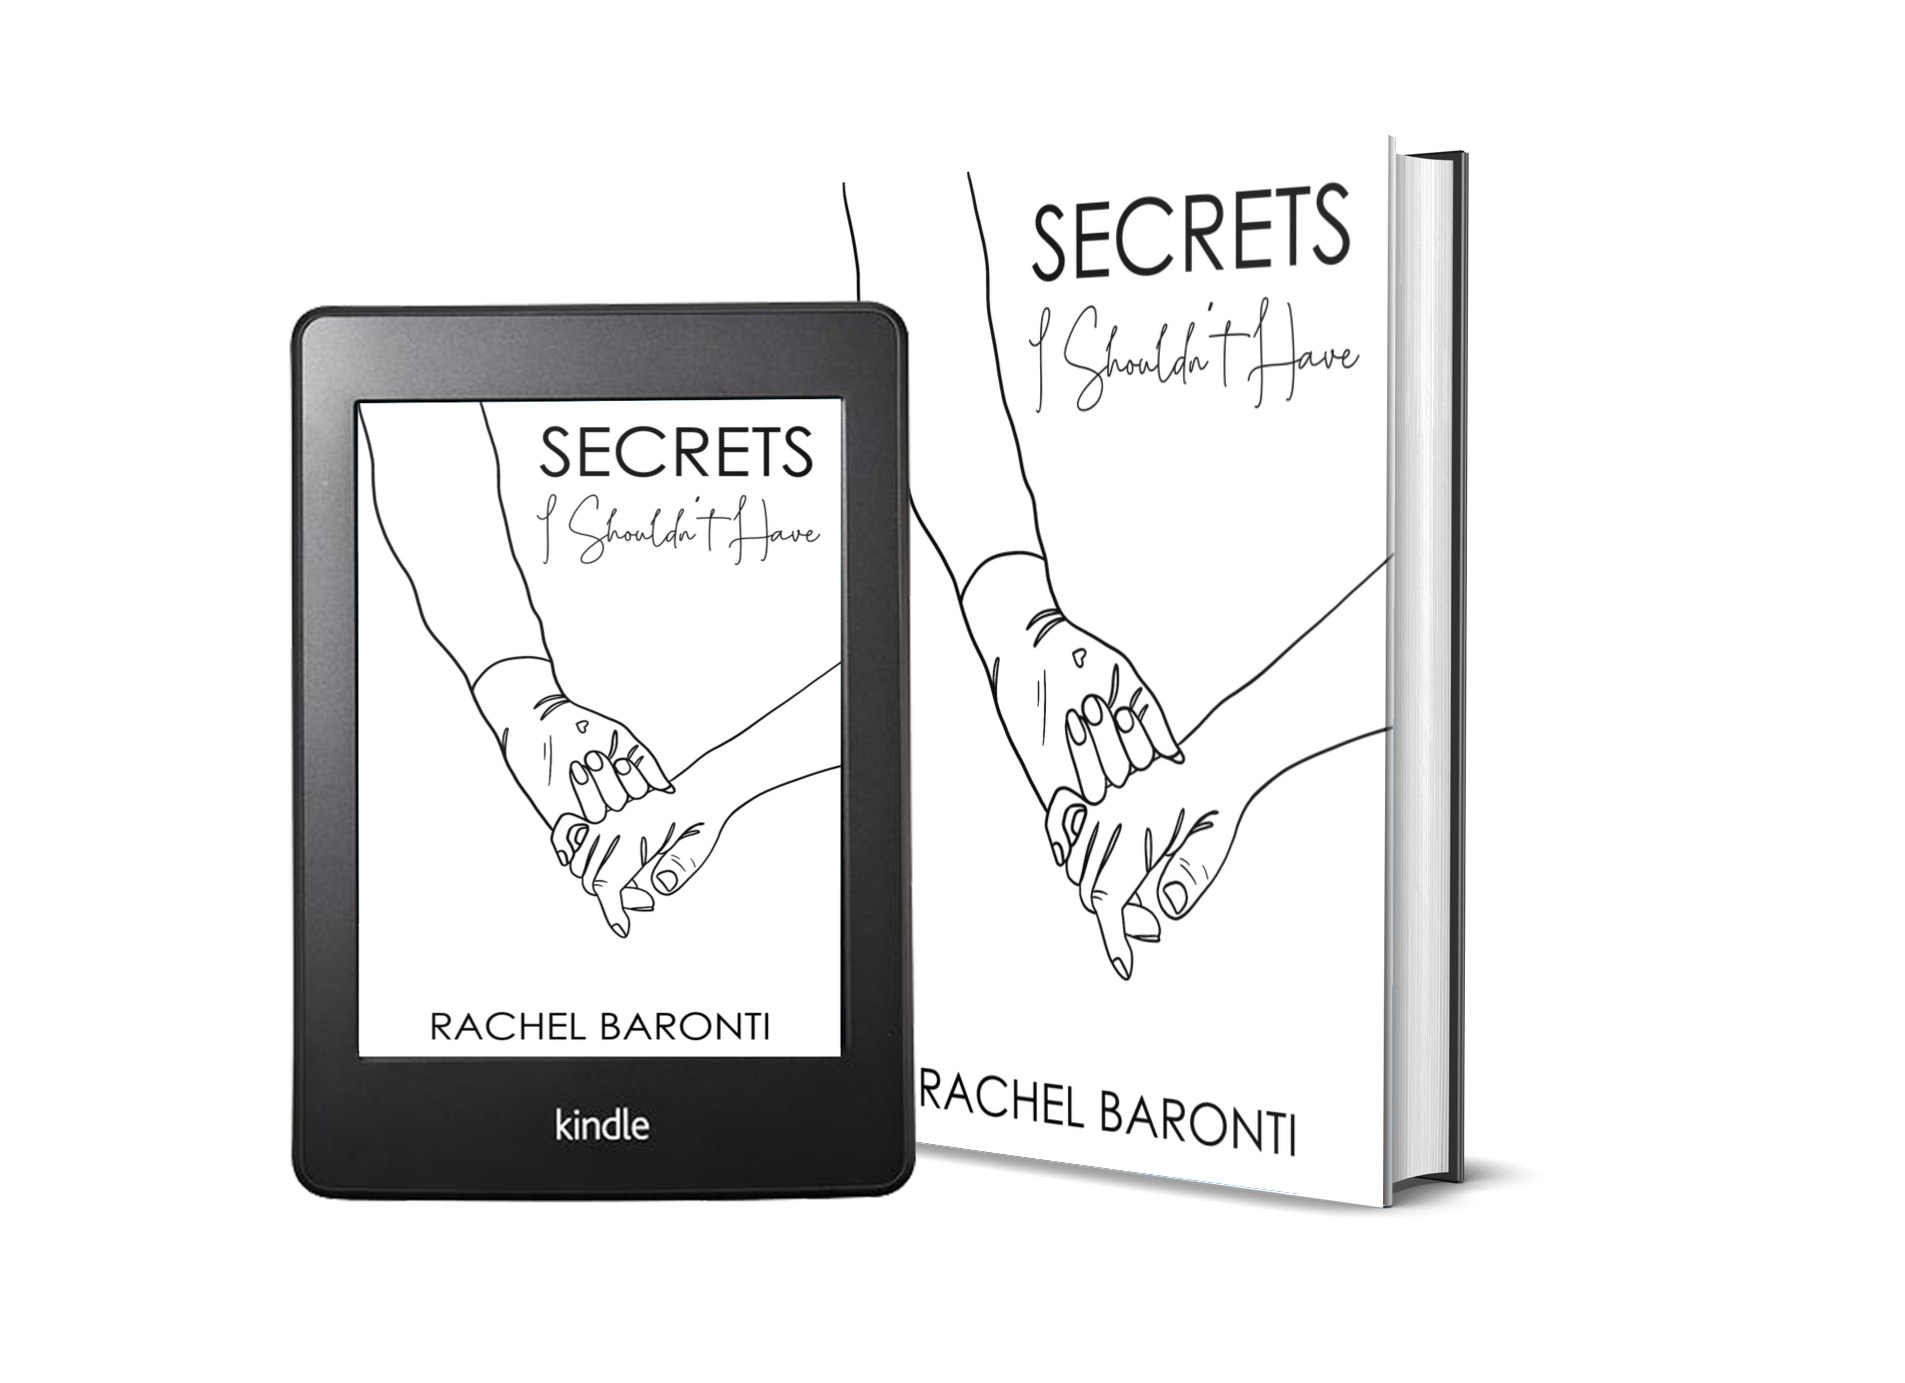 Rachel Baronti begins new poetry collection 'Secrets I Shouldn't Have' with Yellow Scribe